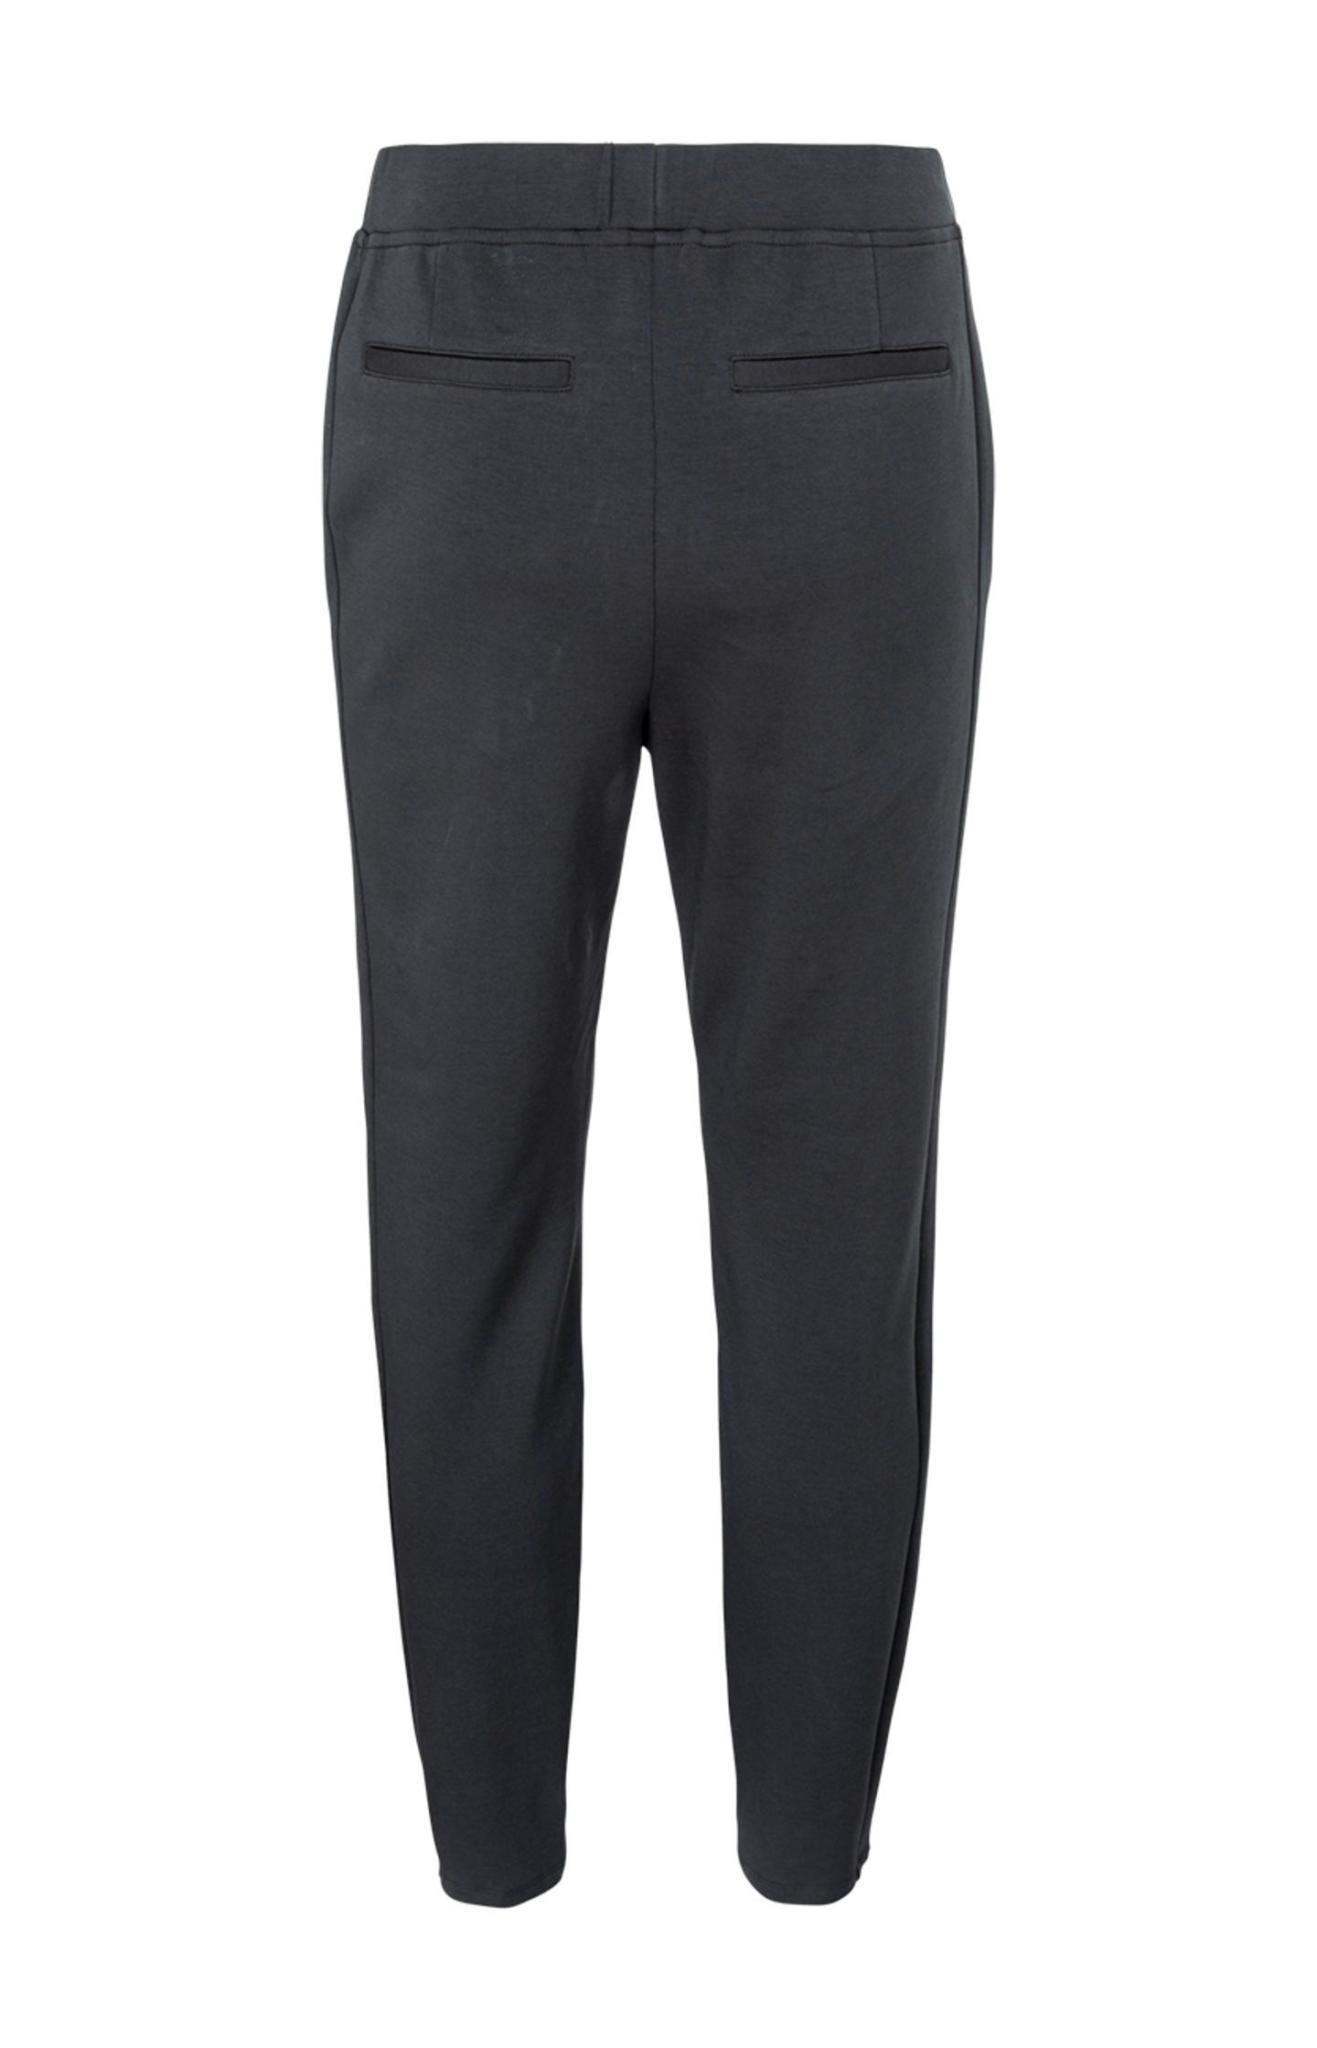 YAYA Women Jersey tailored trousers in a cotton blend fabric